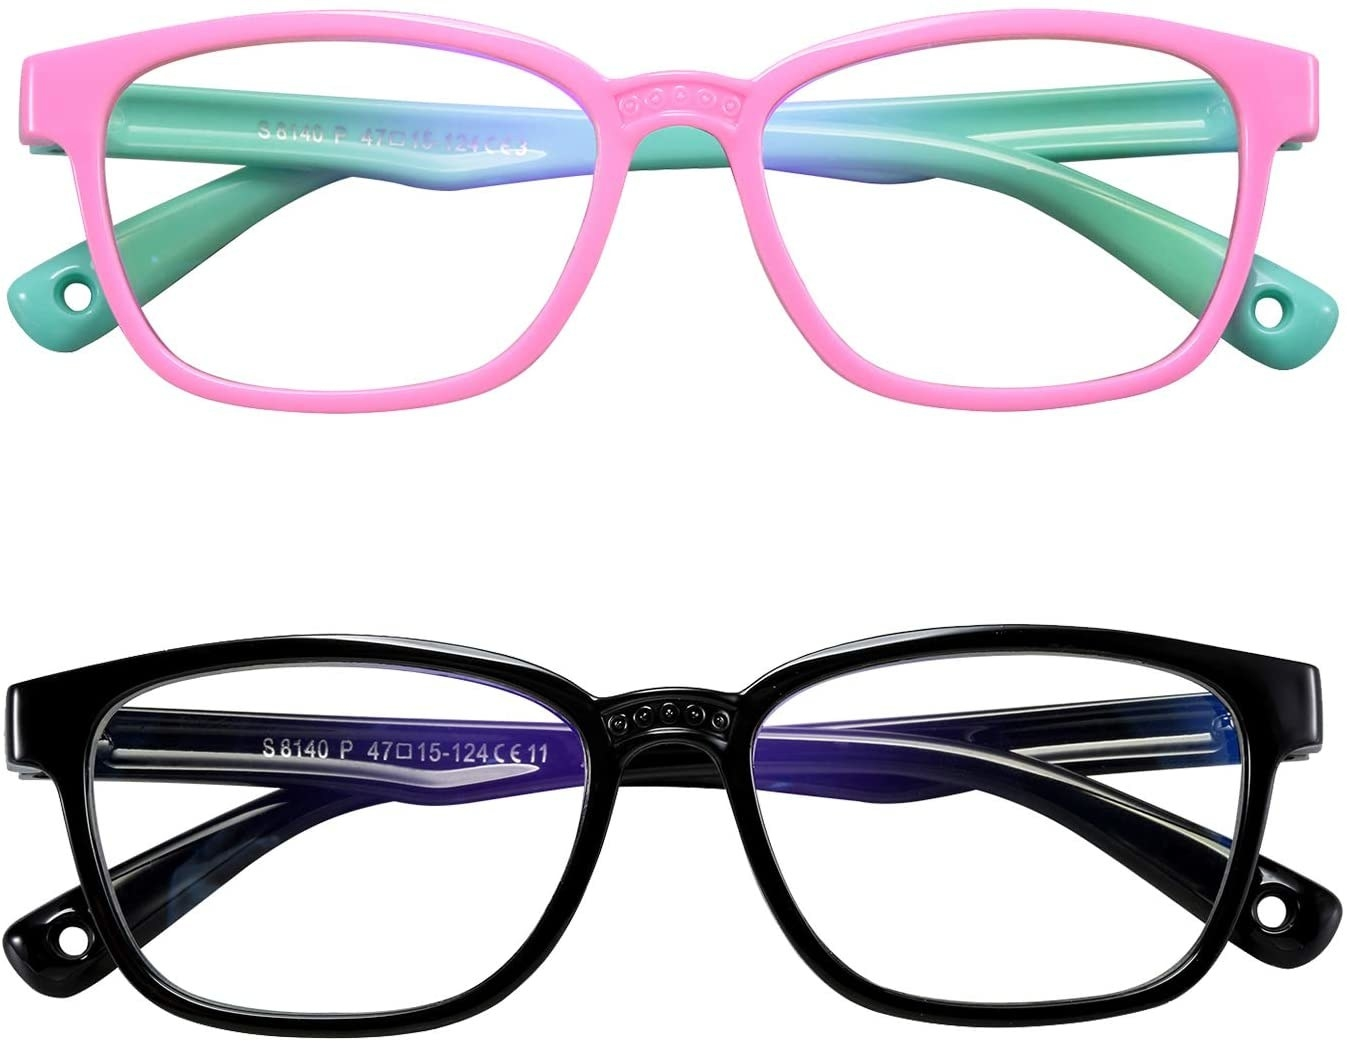 Two glasses. the pair on top is pink and green and the pair on the bottom is black and dark blue